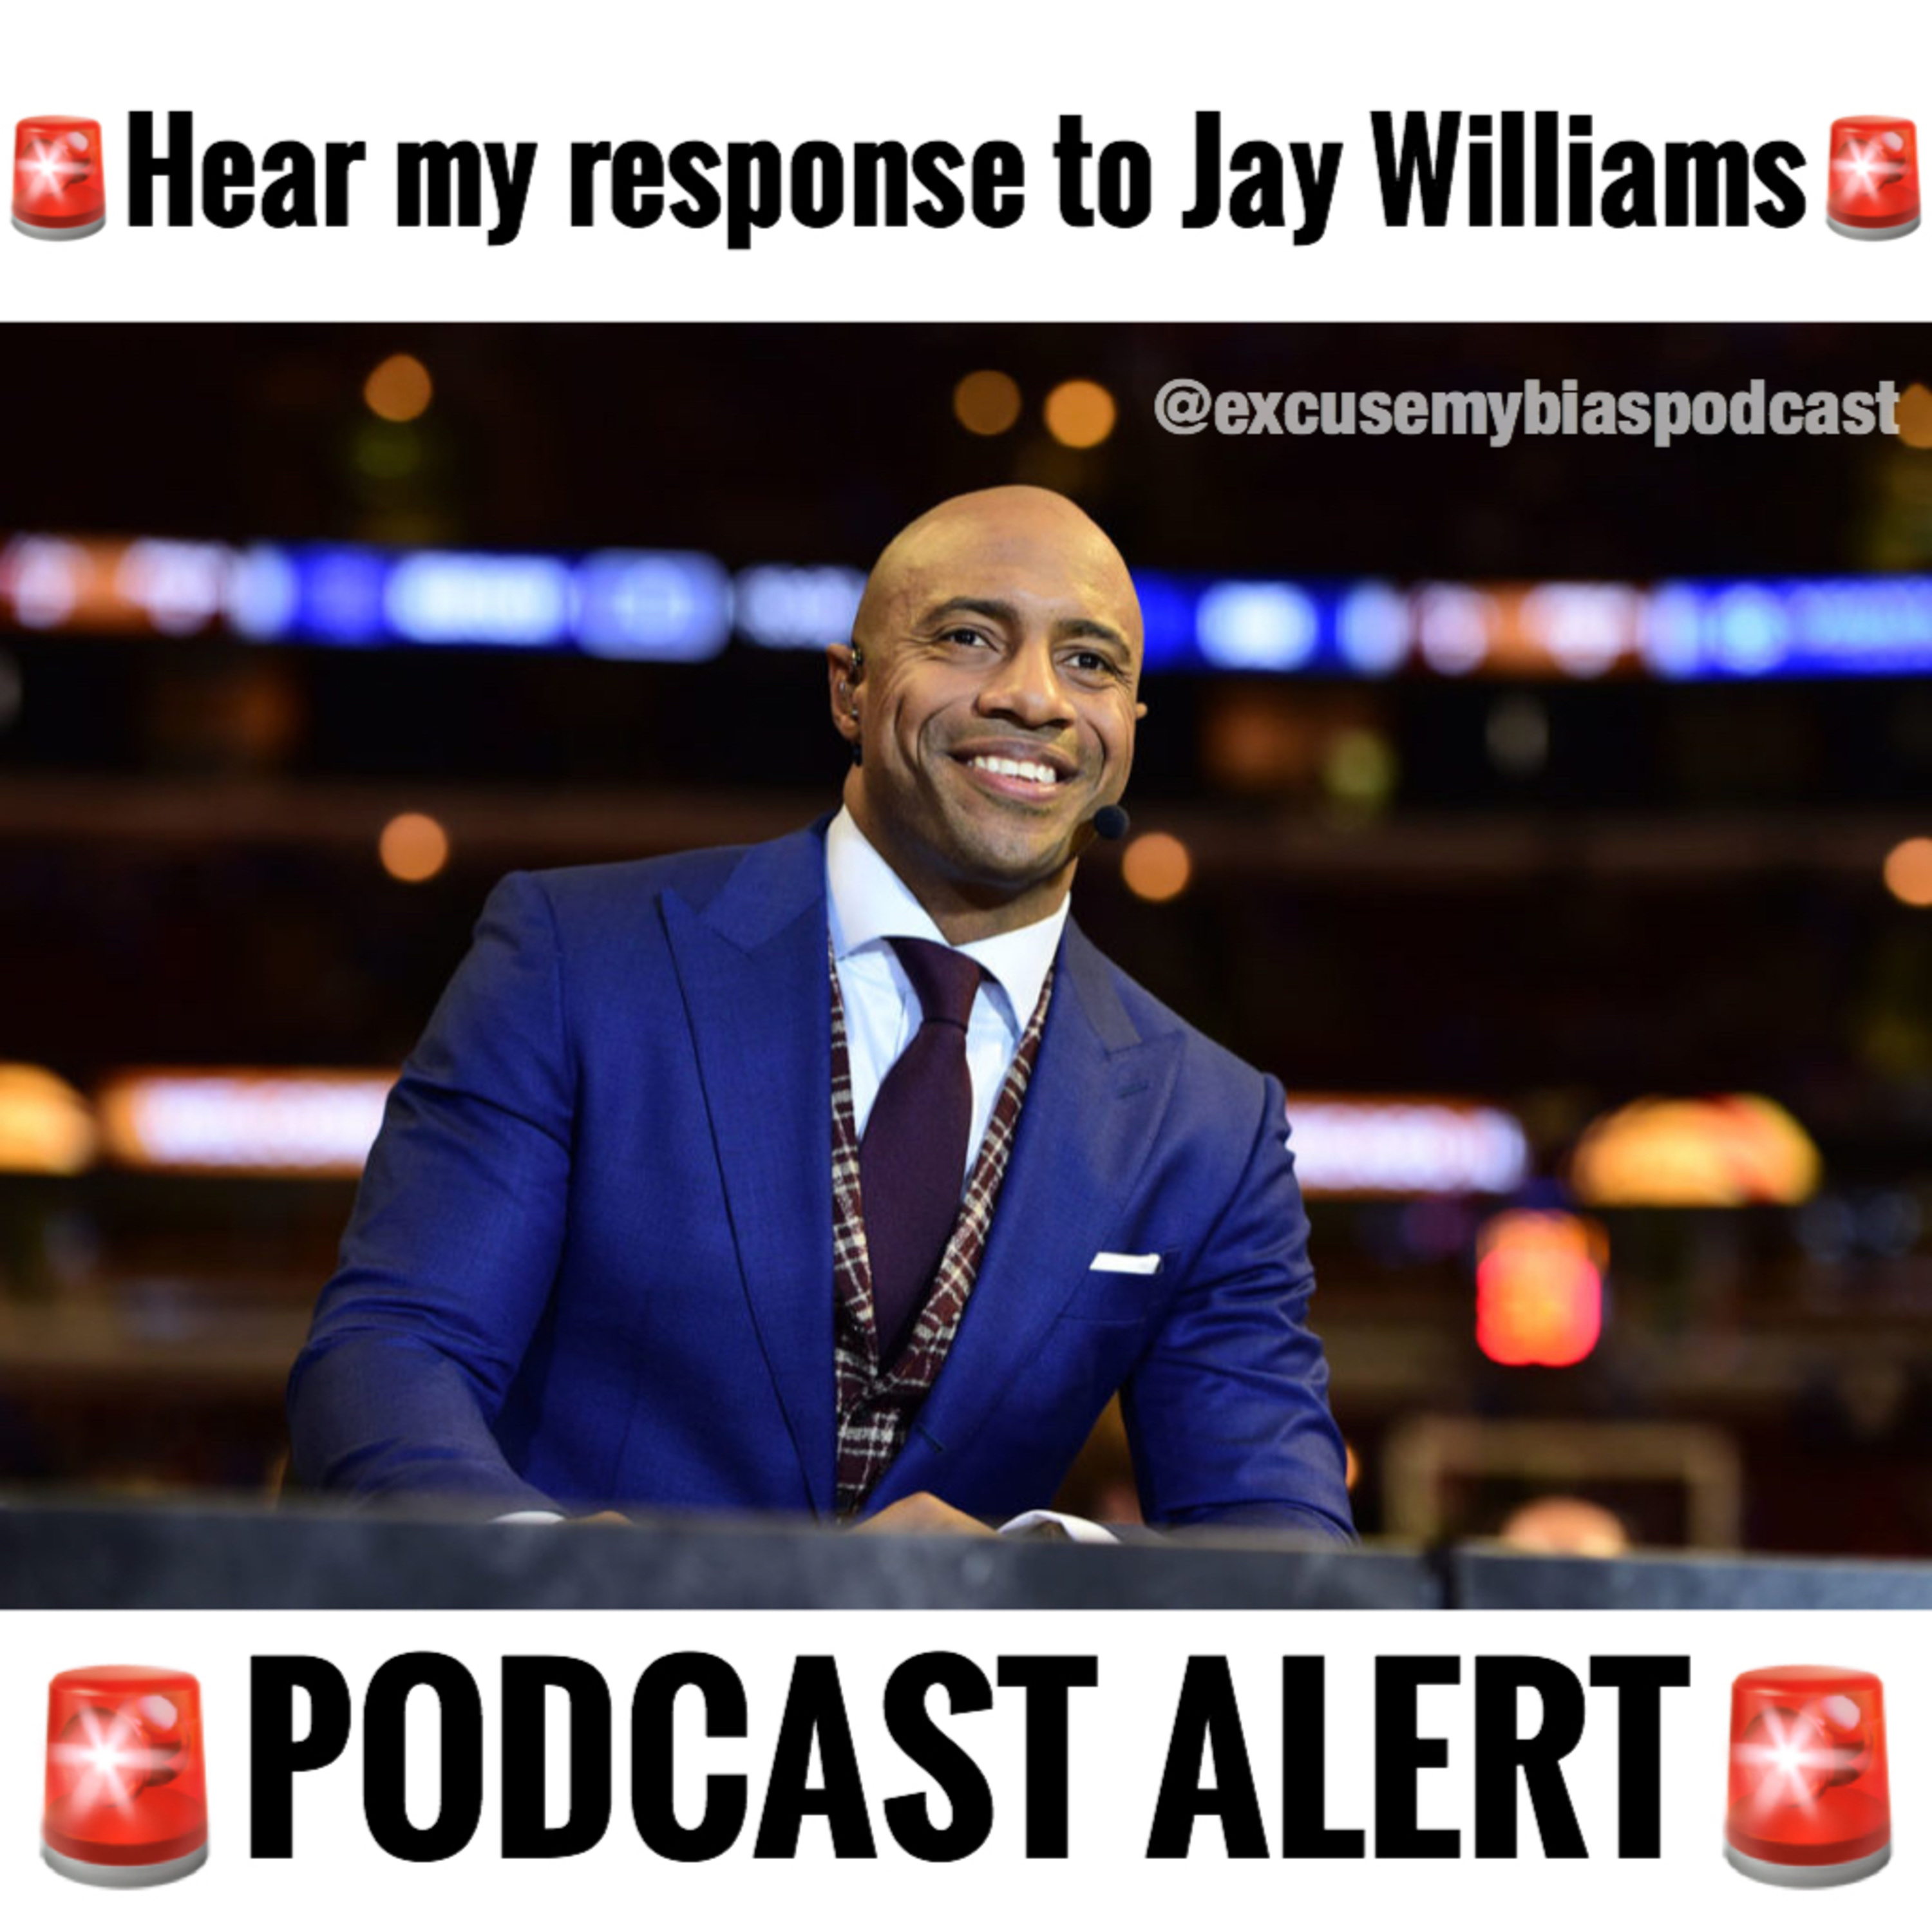 HEAR MY RESPONSE TO ESPN's JAY WILLIAMS REACTION TO MY POST ABOUT HIM CRITICIZING STEPH CURRY